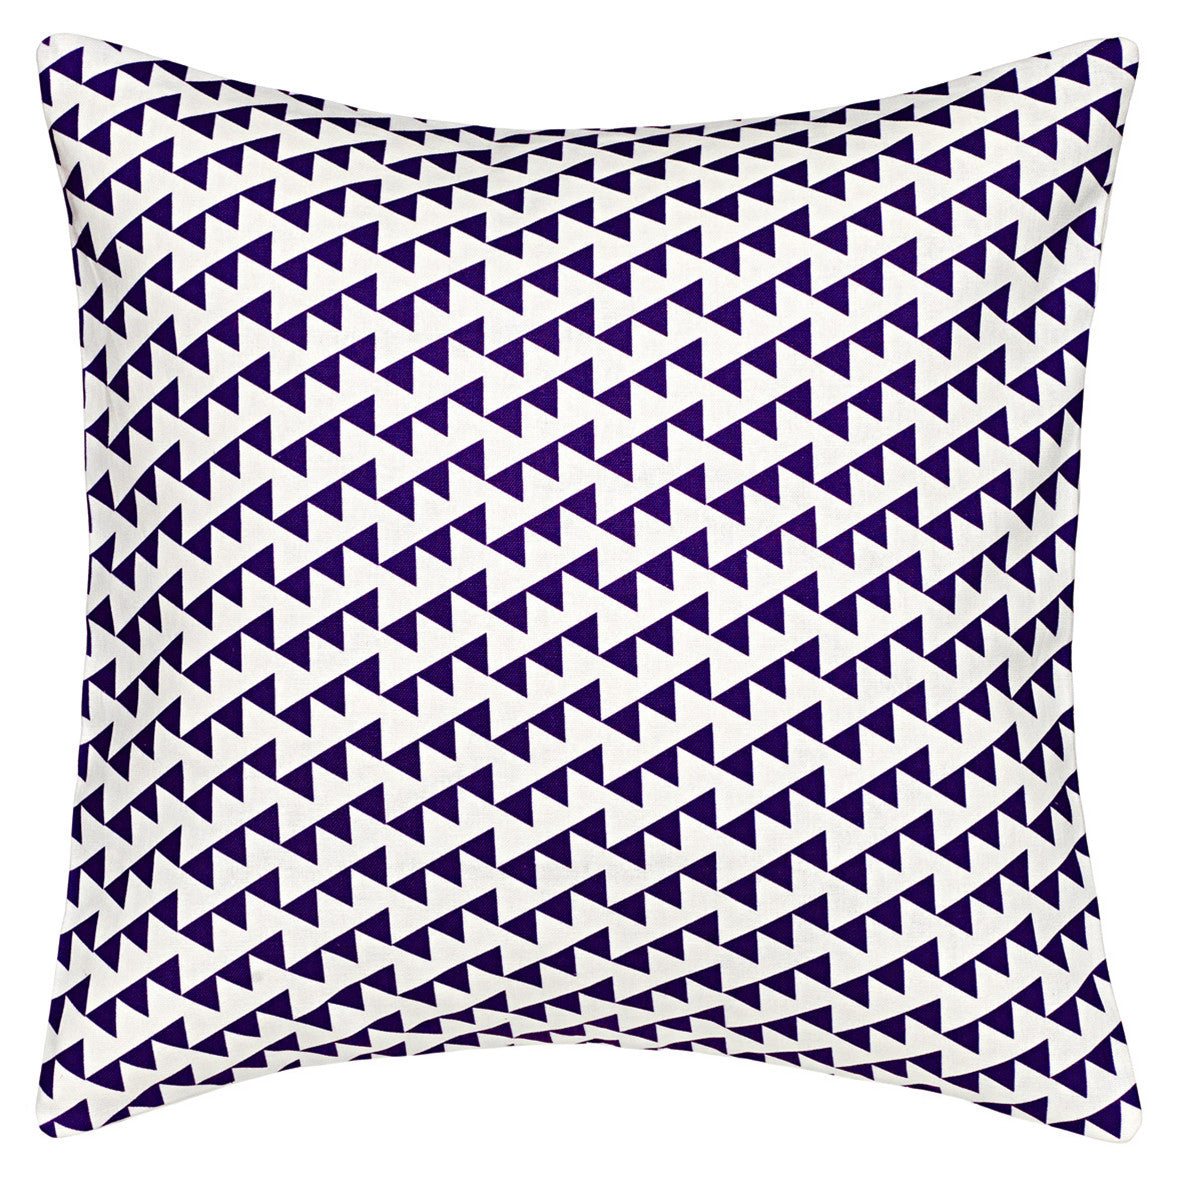 "Bunting Geometric Pattern Linen Cotton Cushion in Dark Aubergine Purple 45x45cm (18x18"") Throw Pillow Ships from Canada worldwide including the USA"